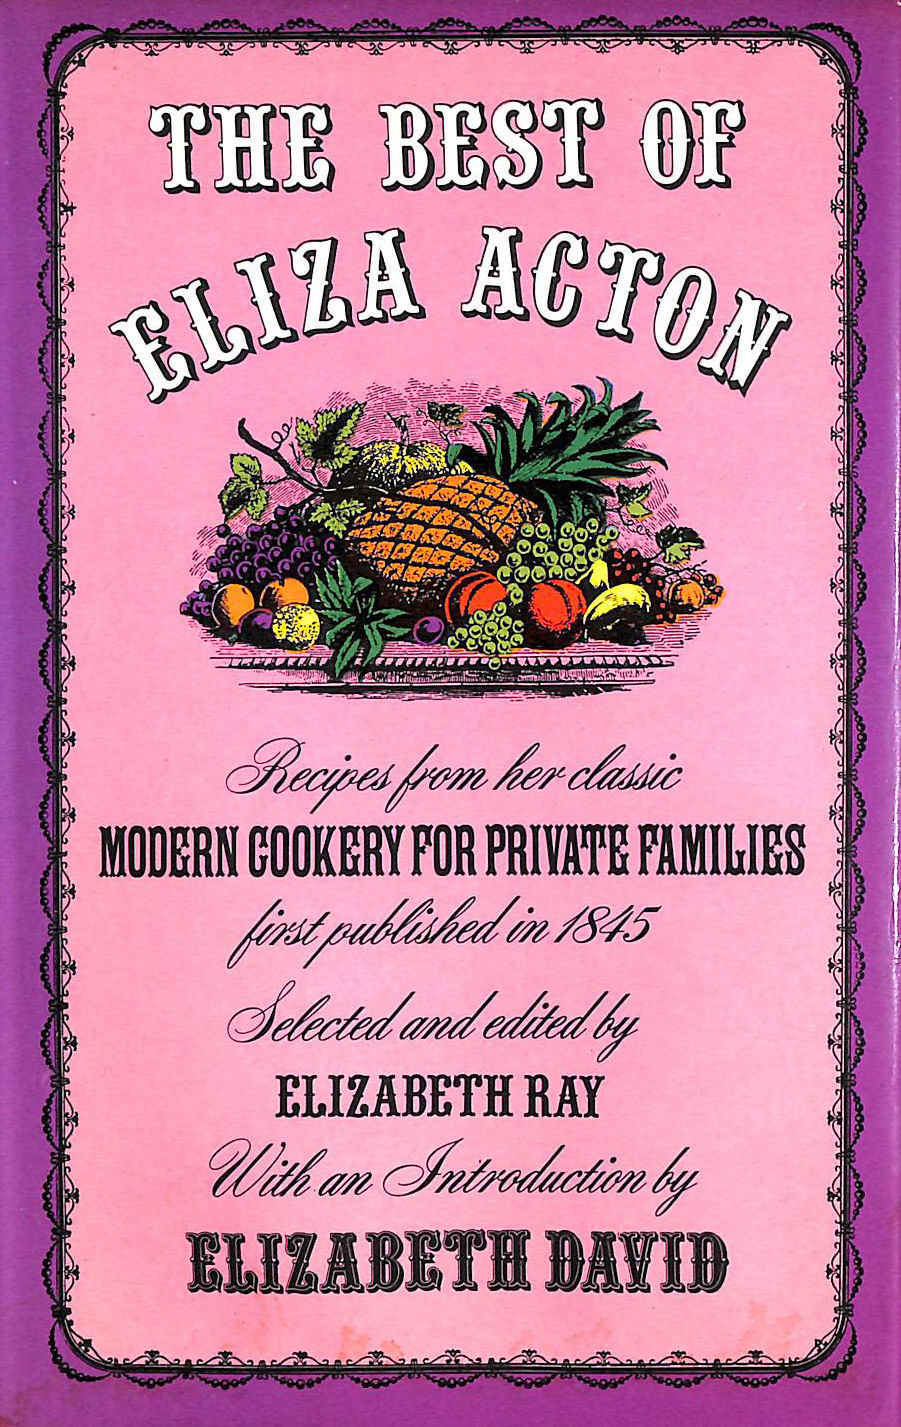 Image for The Best of Eliza Acton: Recipes from her classic 'Modern cookery for private families', first published in 1845